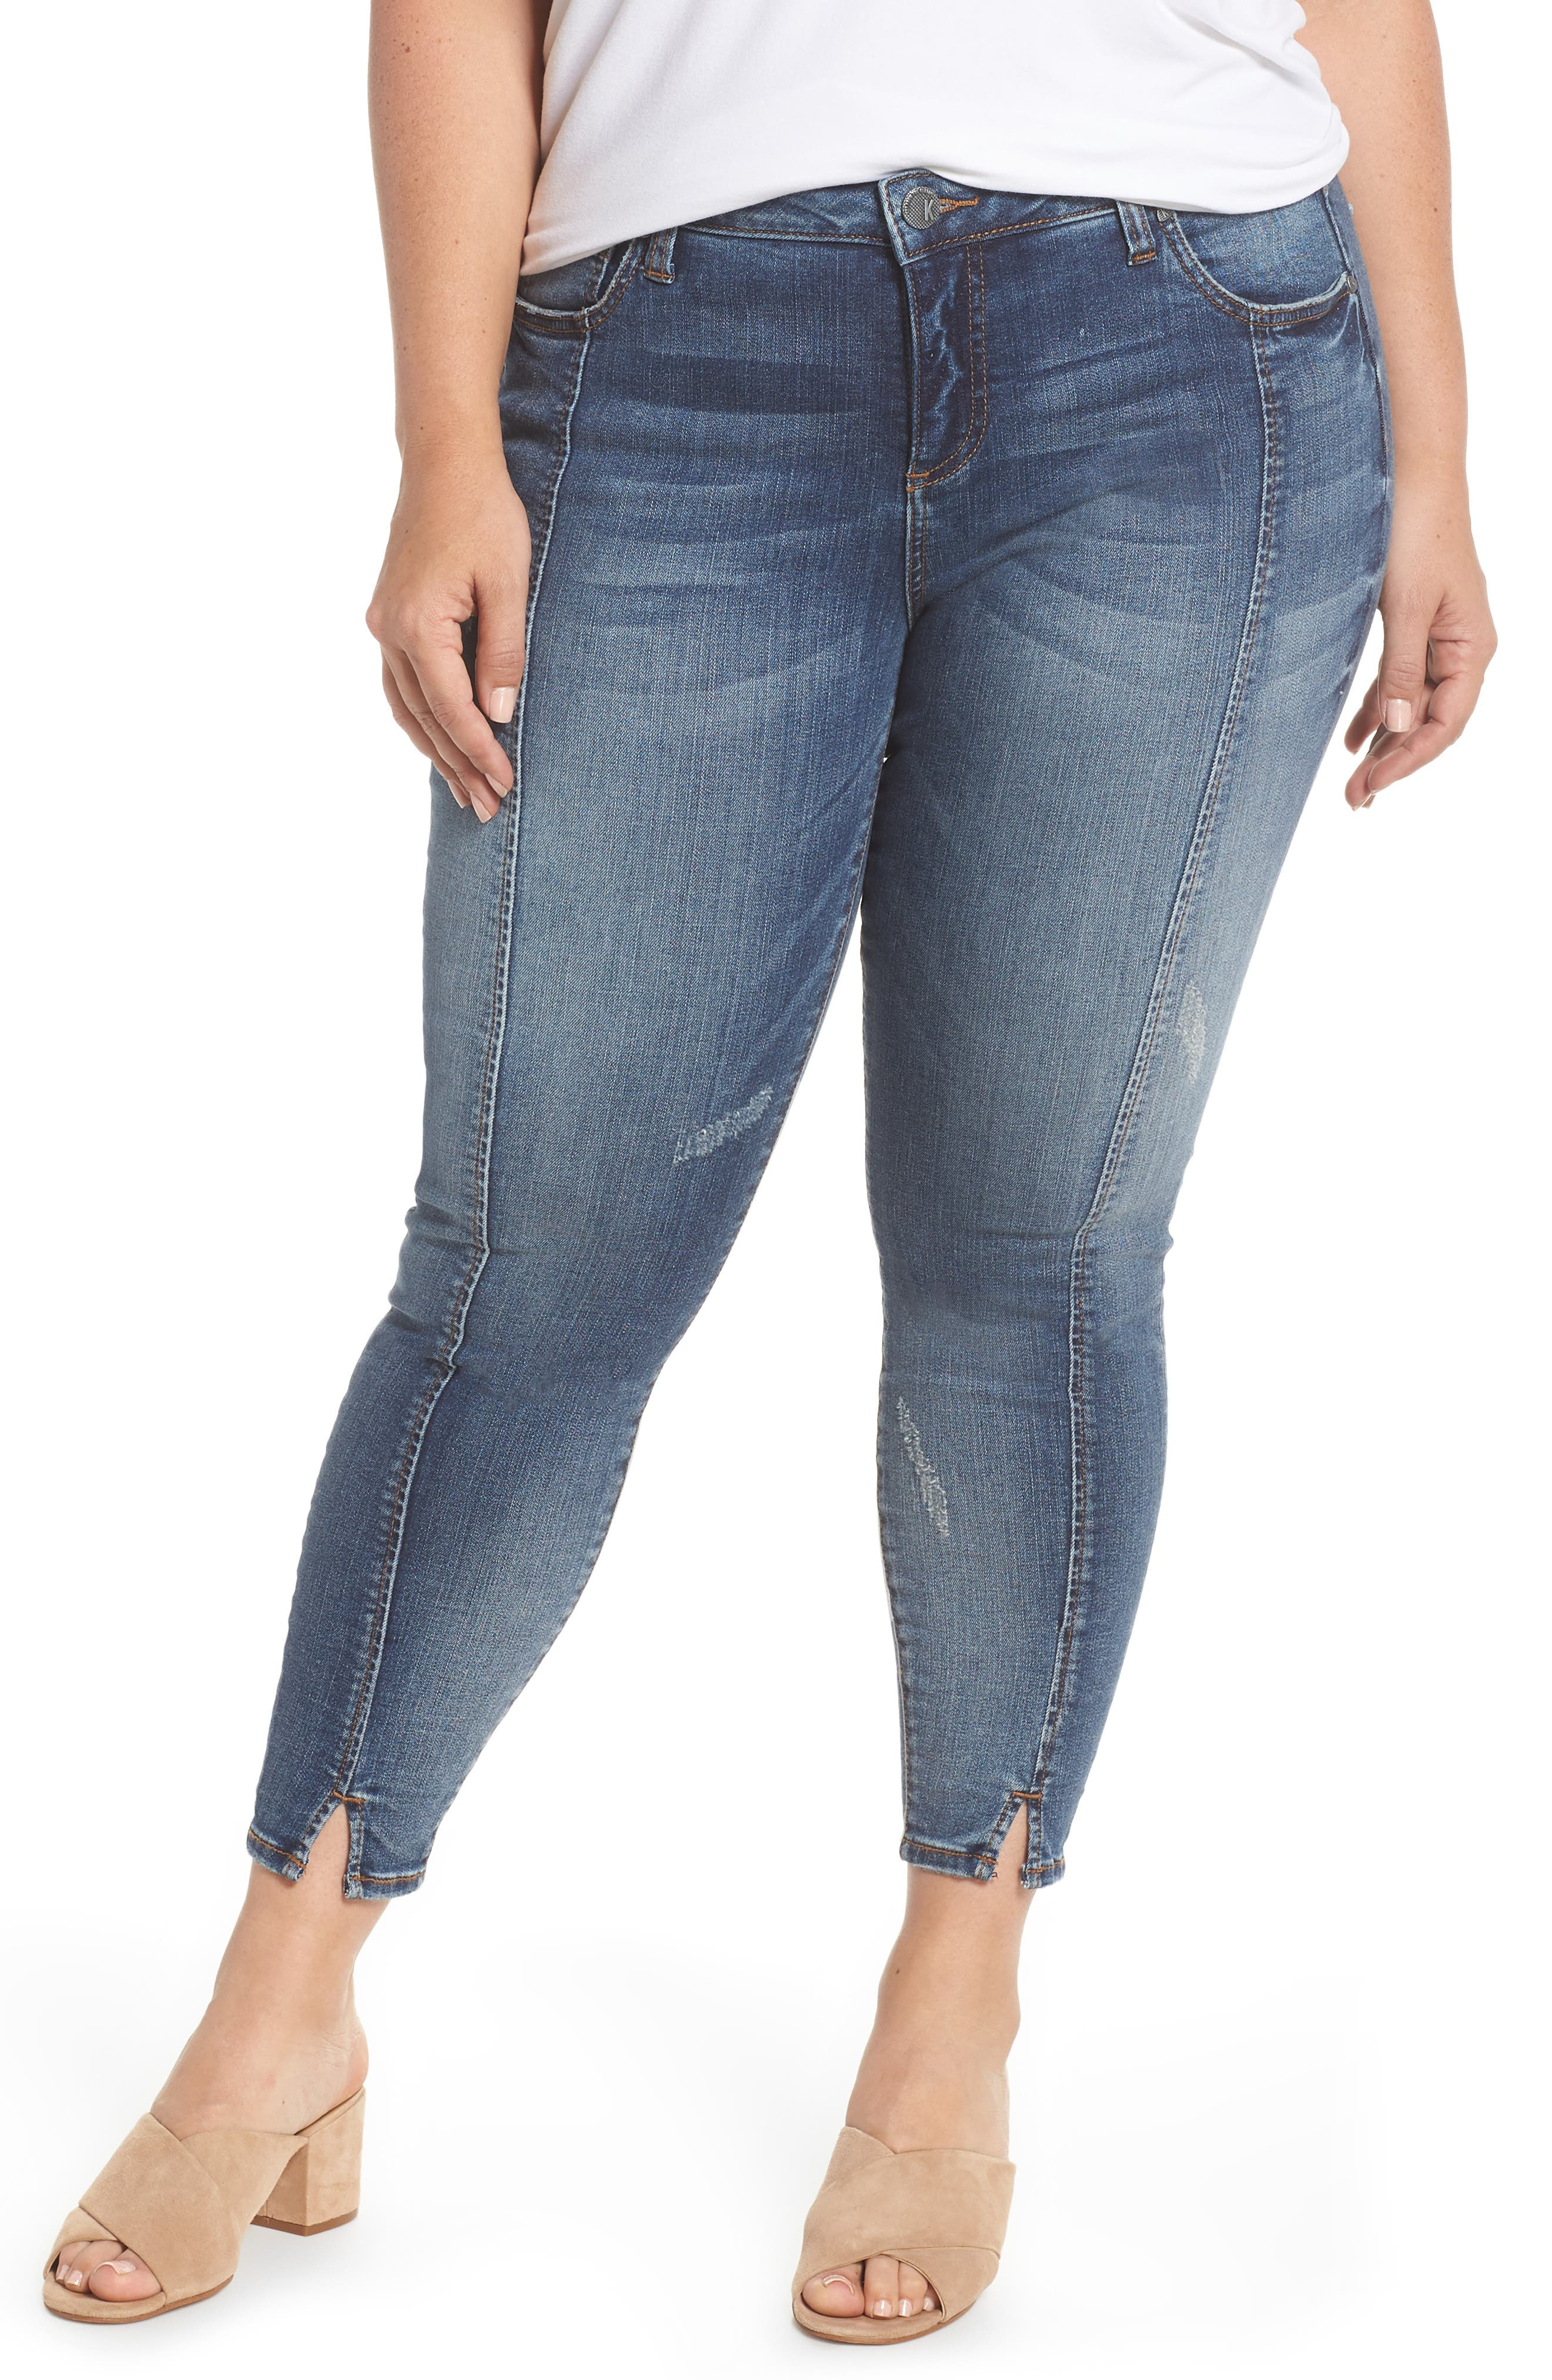 KUT from the Kloth Reese Seam Ankle Skinny Jeans (Plus Size)